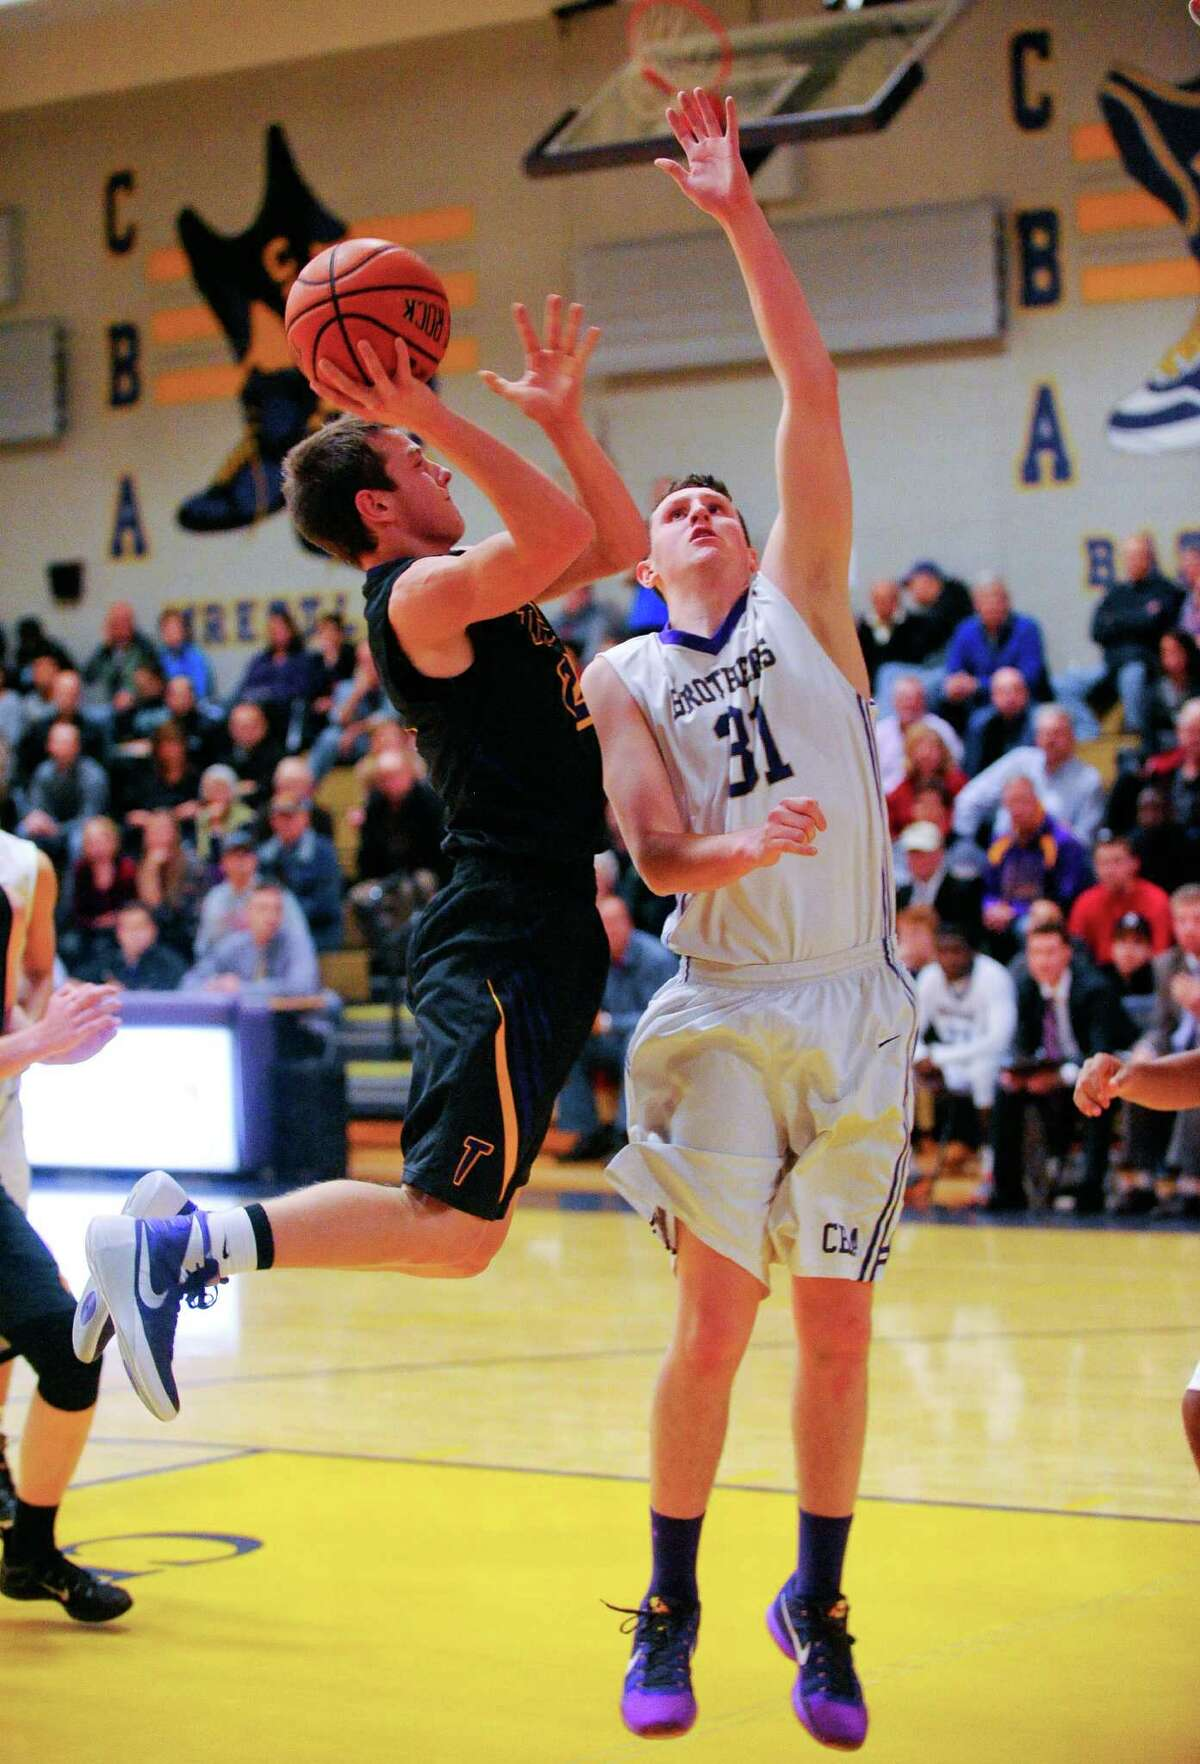 Troy's Ryan Carmello (2) puts up a shot against Christian Brothers Academy's Ian Schultz (31) during the first half of their boys' high school basketball game on Thursday, Dec. 18, 2015, in Colonie, N.Y. (Hans Pennink / Special to the Times Union) ORG XMIT: HP101